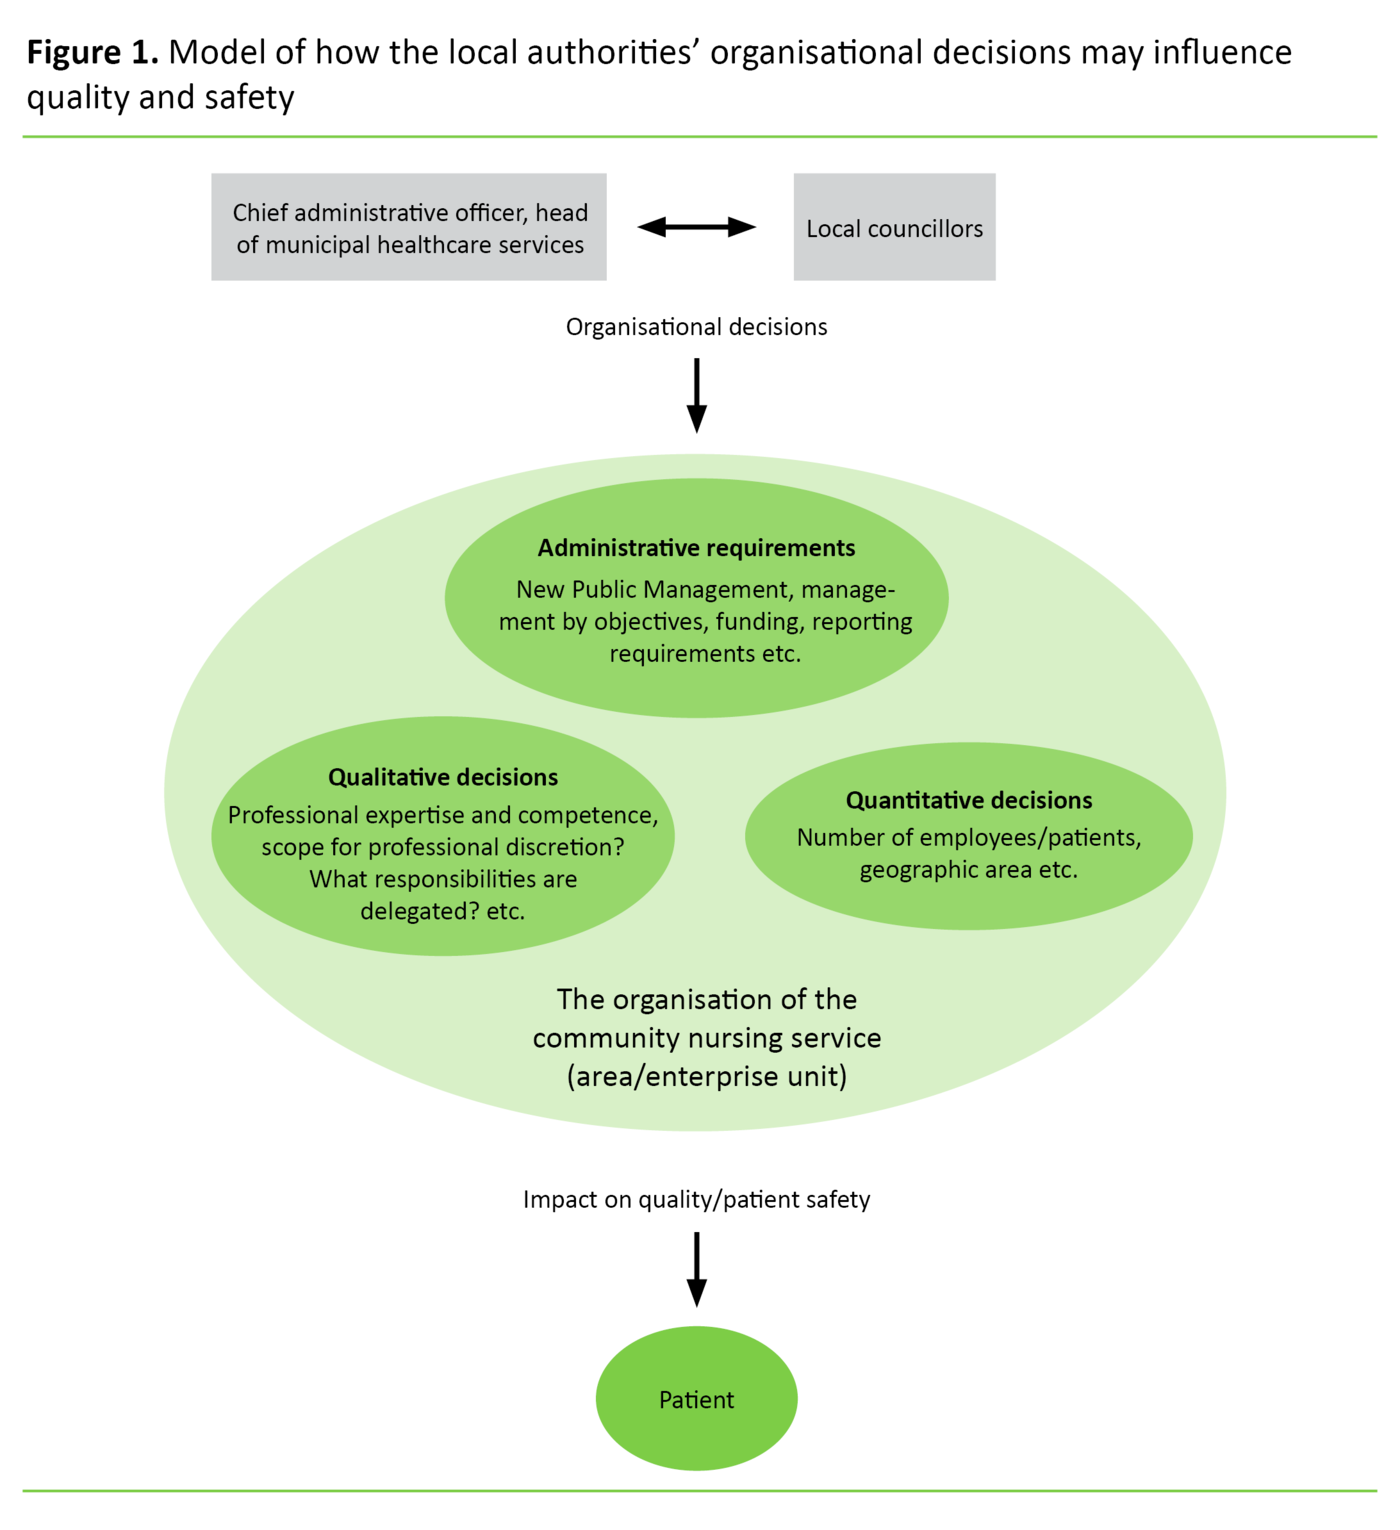 Figure 1. Model of how the local authorities' organisational decisions may influence quality and safety